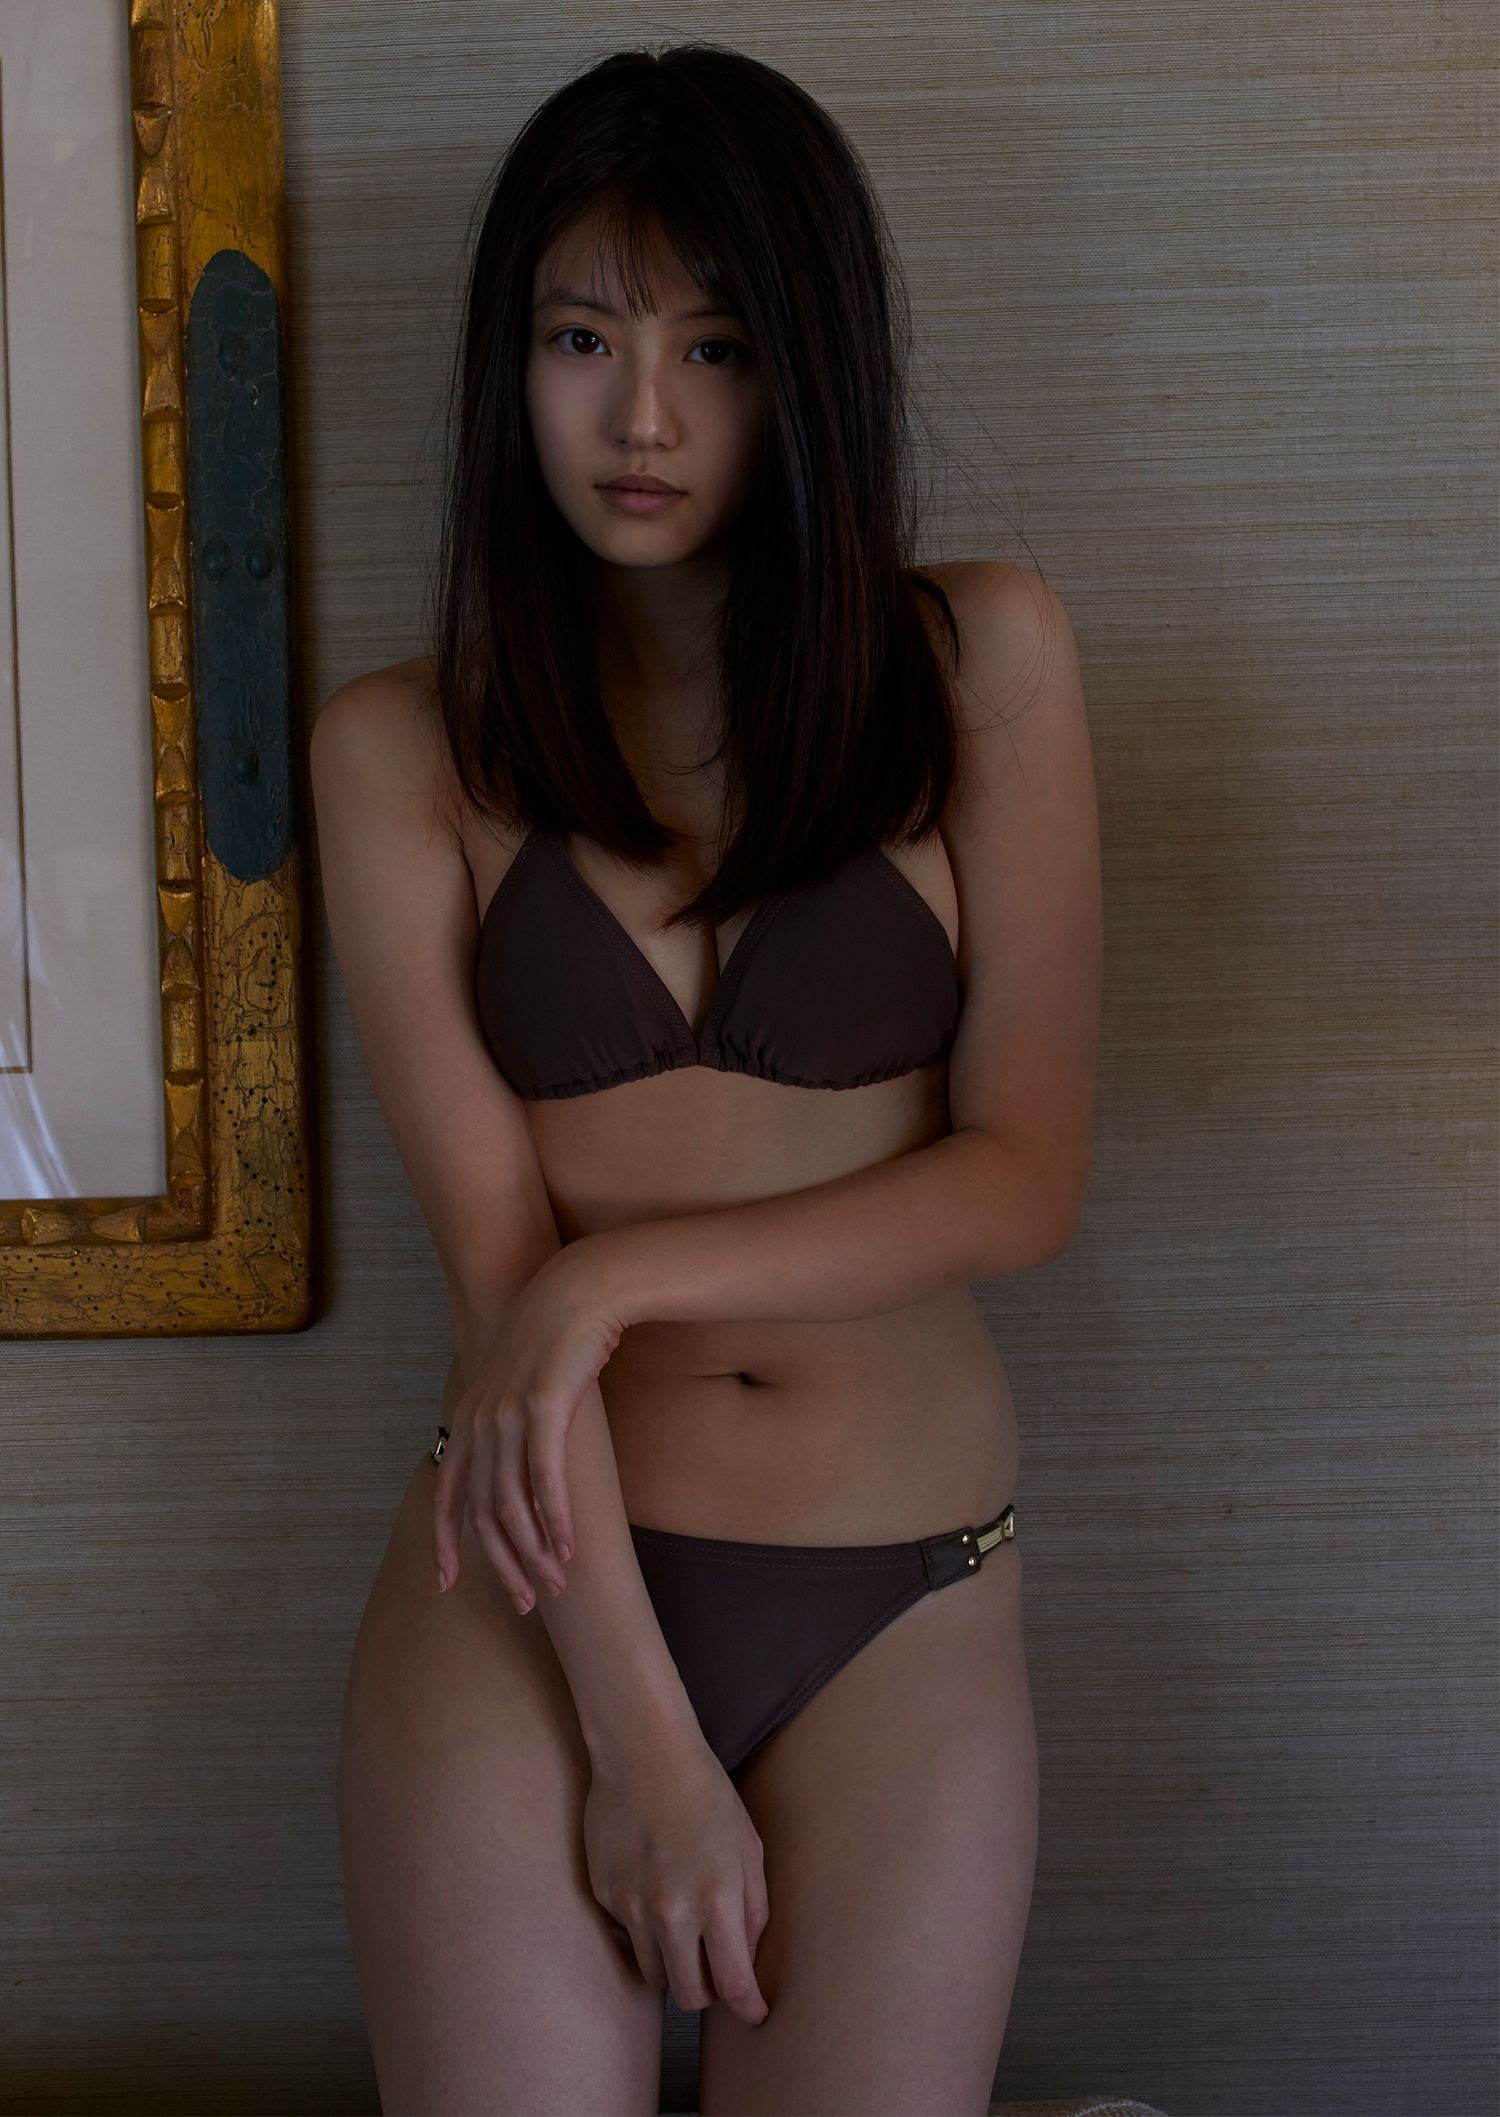 Without a doubt the youngest actress Mio Imada074